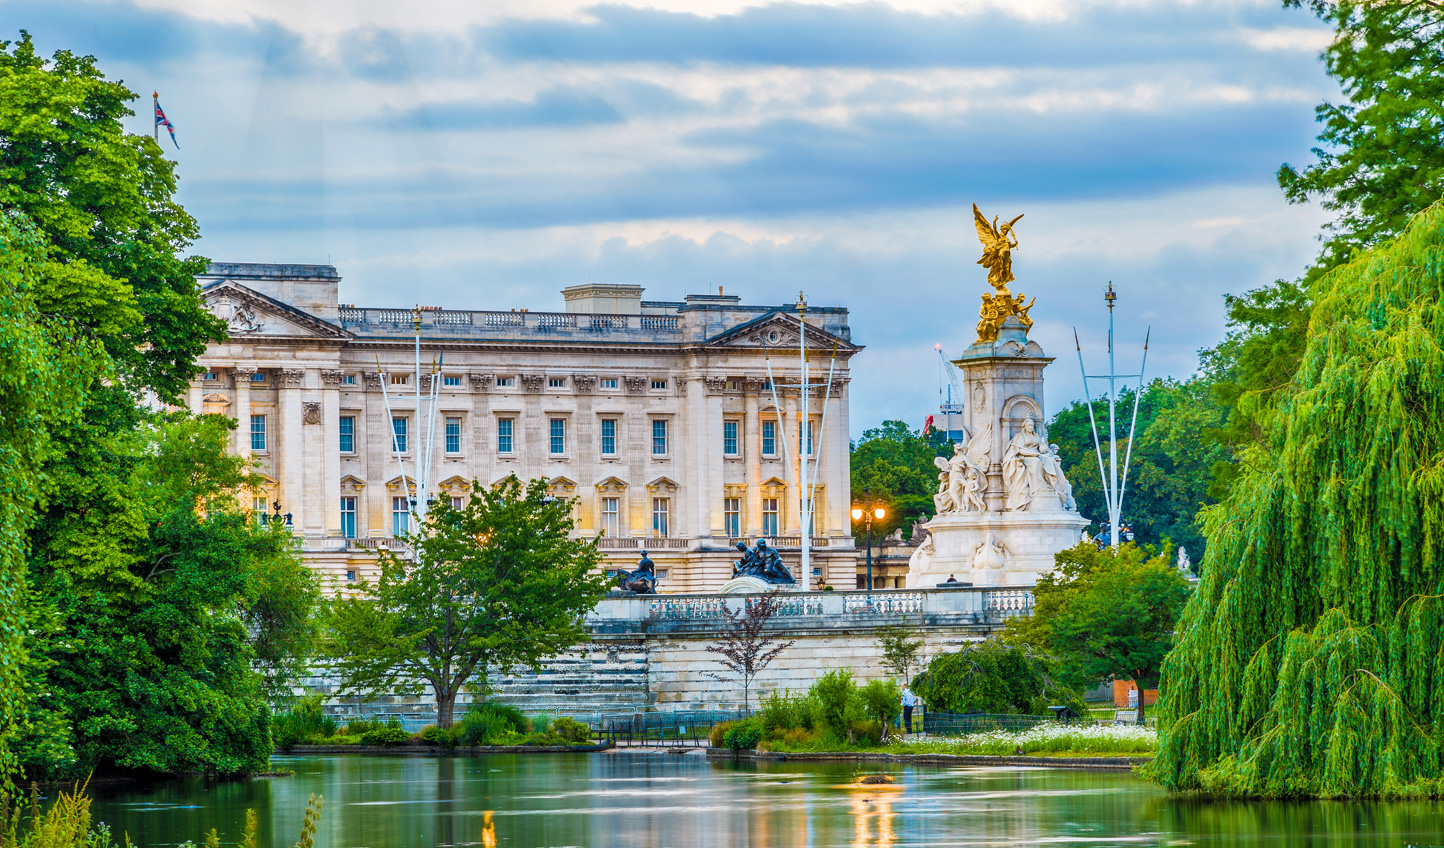 Discover the history of London as you stroll past some of its most famous sights